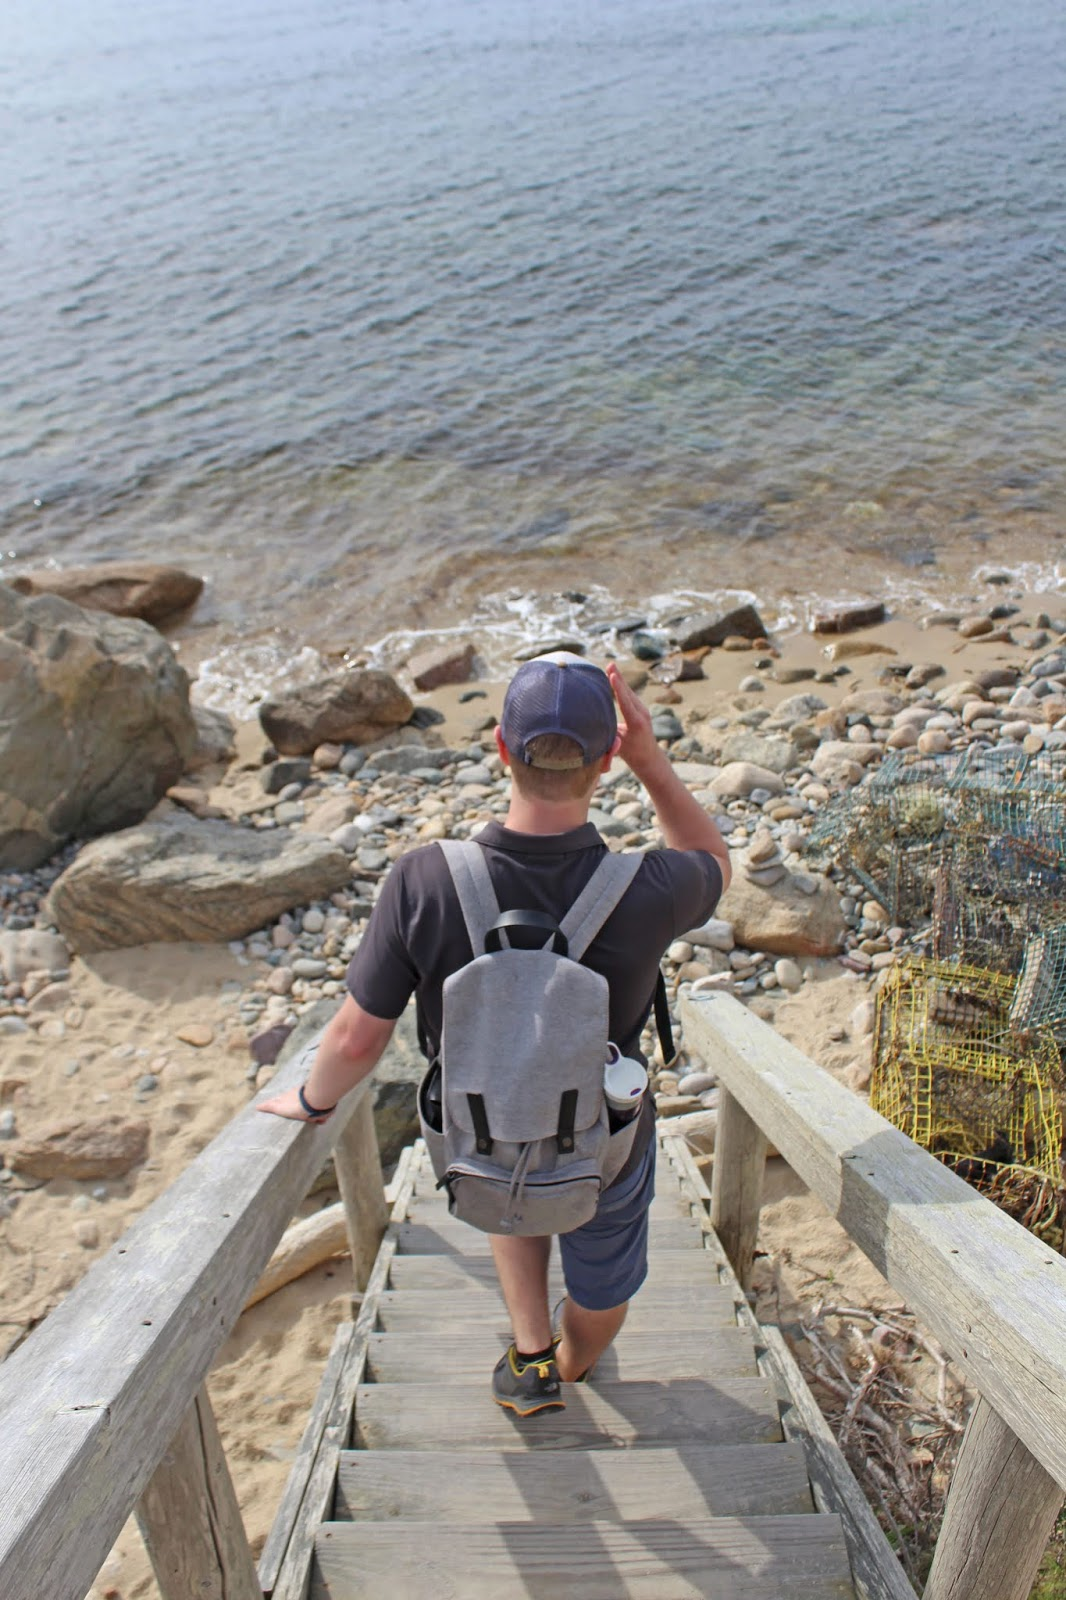 hiking to a secluded beach 6